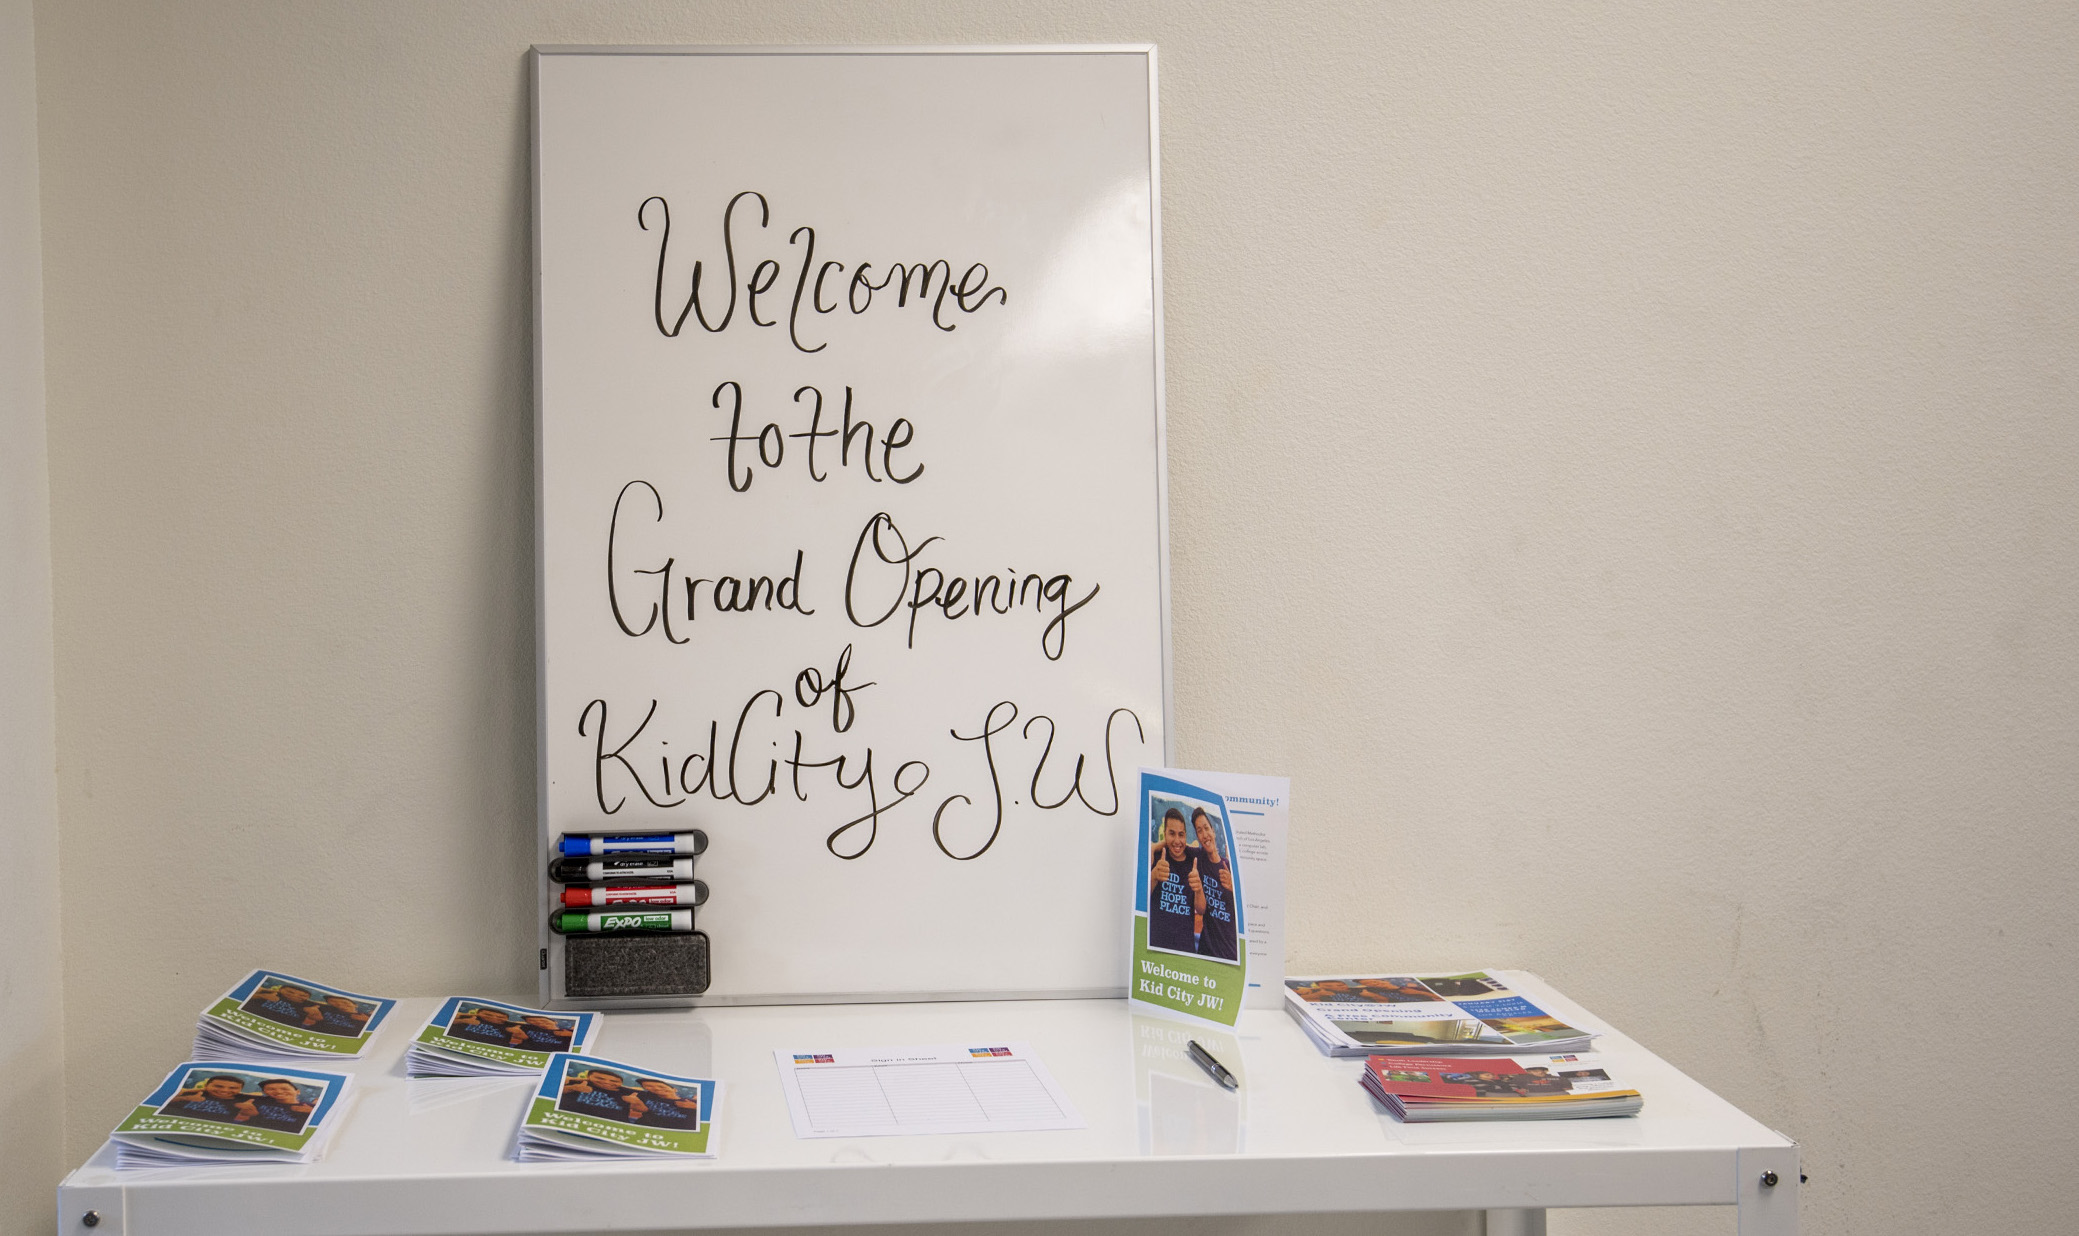 Kid_City_Grand_Opening-welcome_.jpg